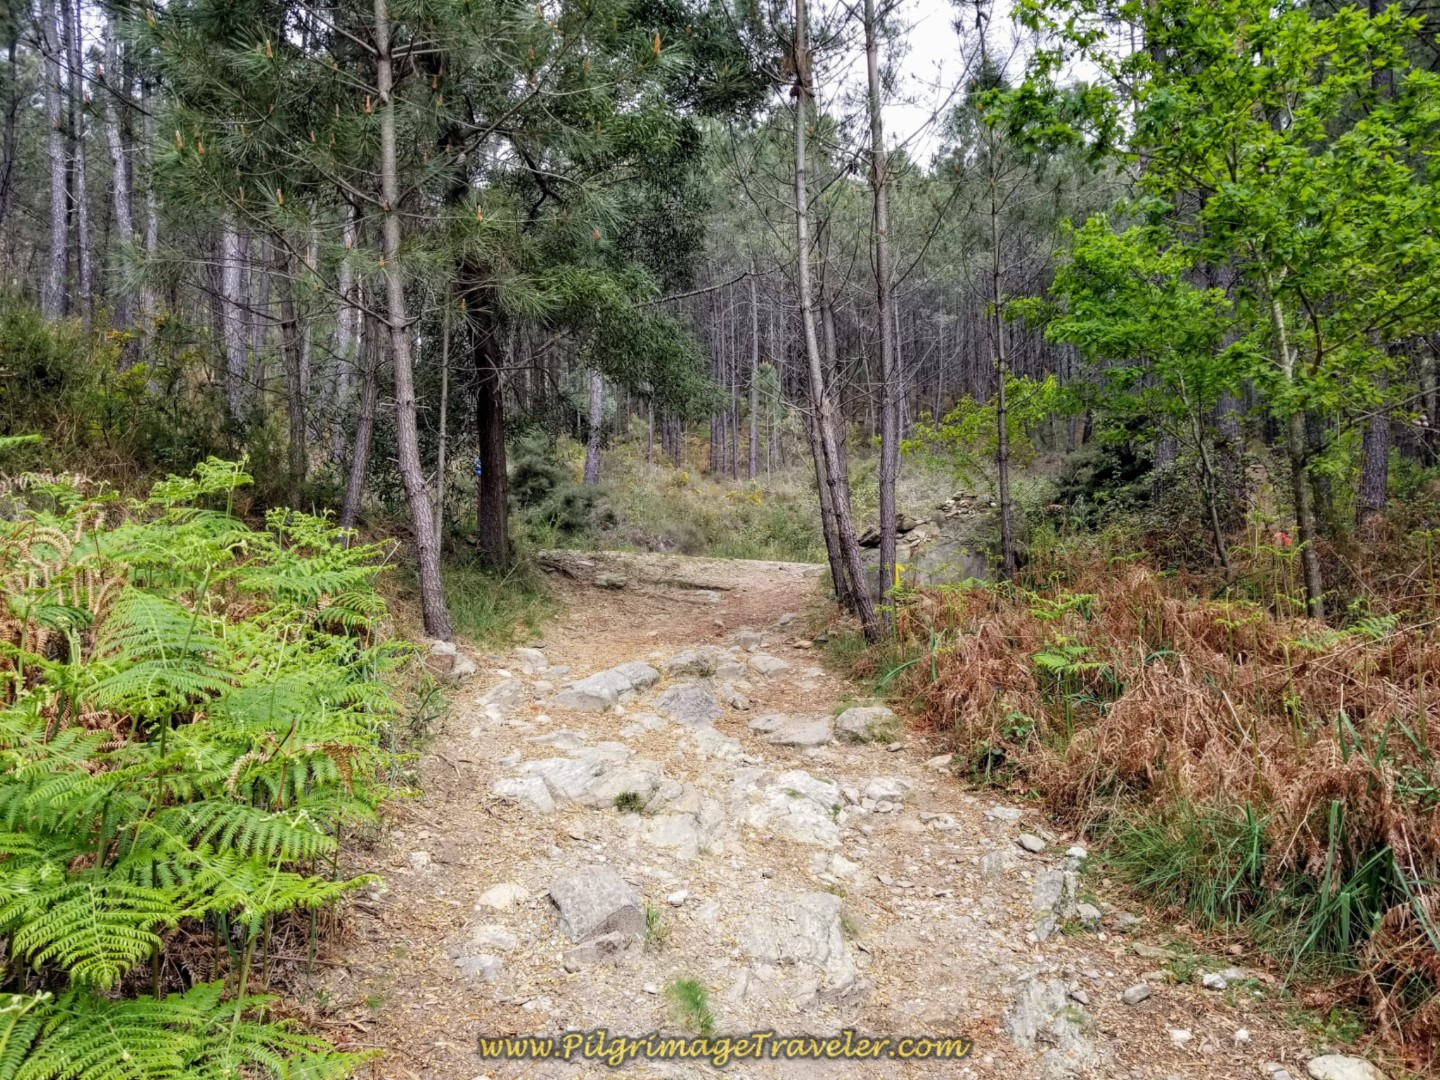 Joining the Via Romana, the ancient Roman road on the climb to the top, the Alto da Portela Grande de Labruja,  on day eighteen on the Central Route of the Portuguese Camino.